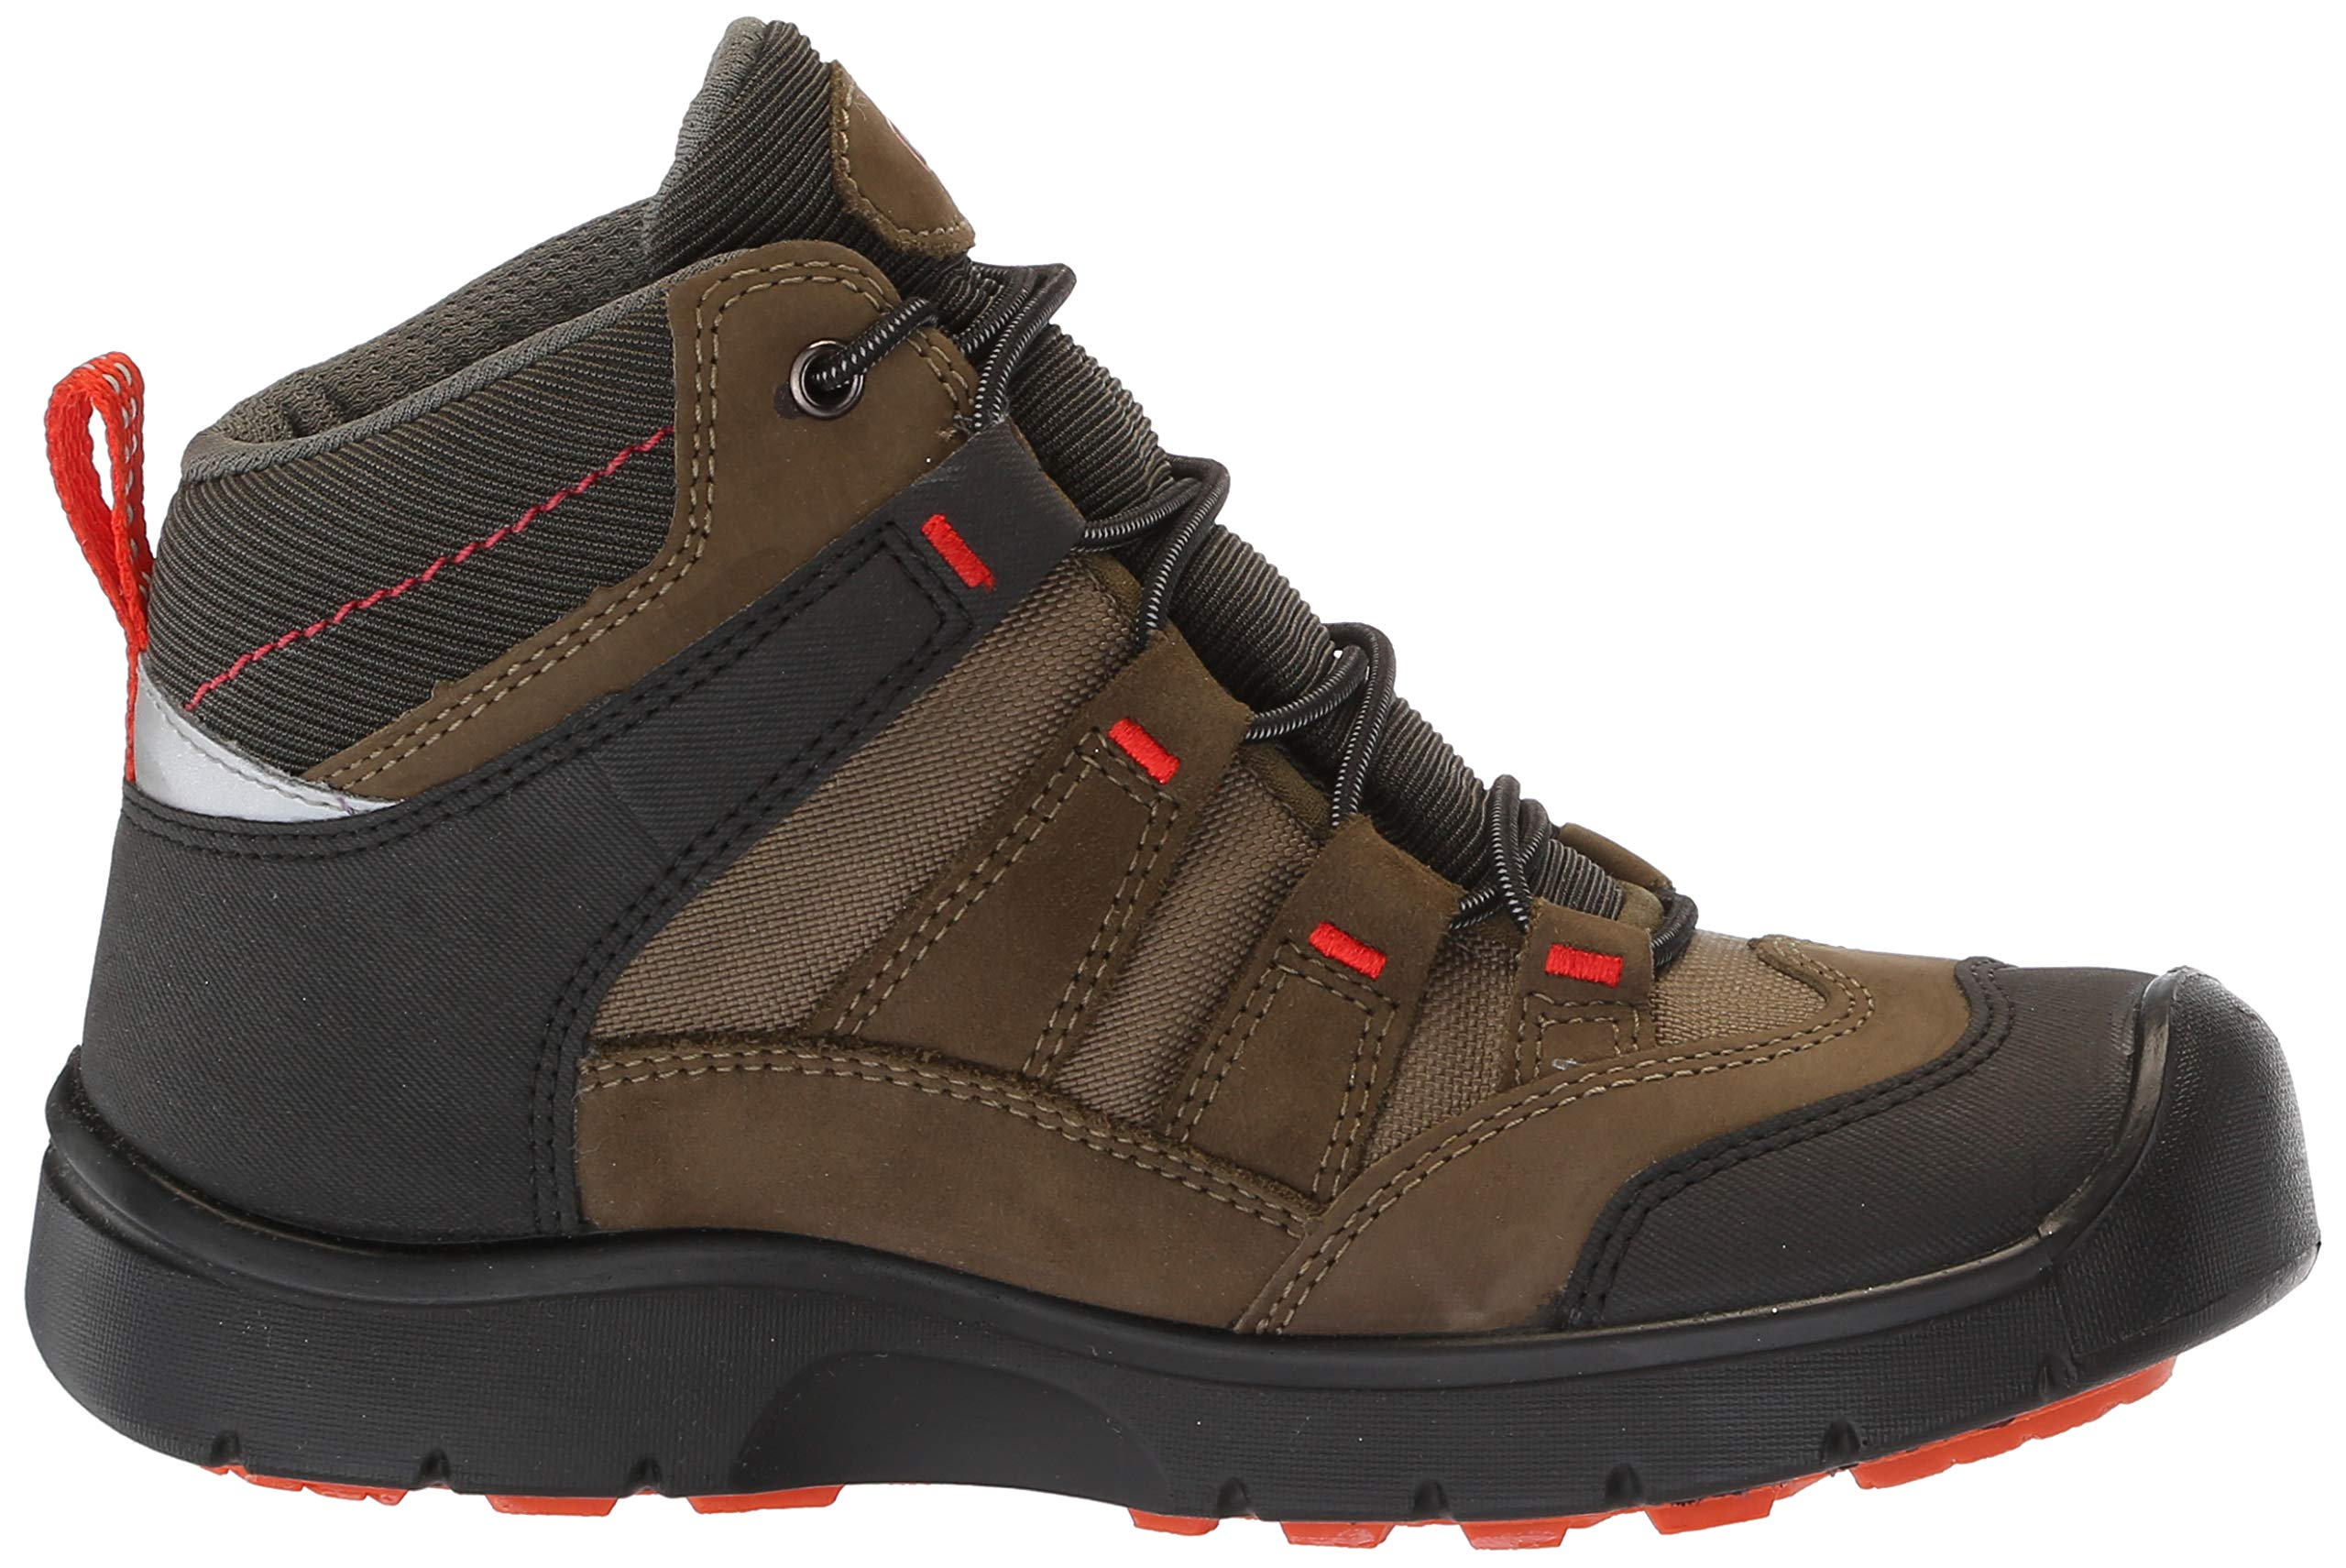 KEEN Unisex HIKEPORT MID WP Hiking Boot, Martini Olive/pureed Pumpkin, 12 M US Little Kid by KEEN (Image #7)